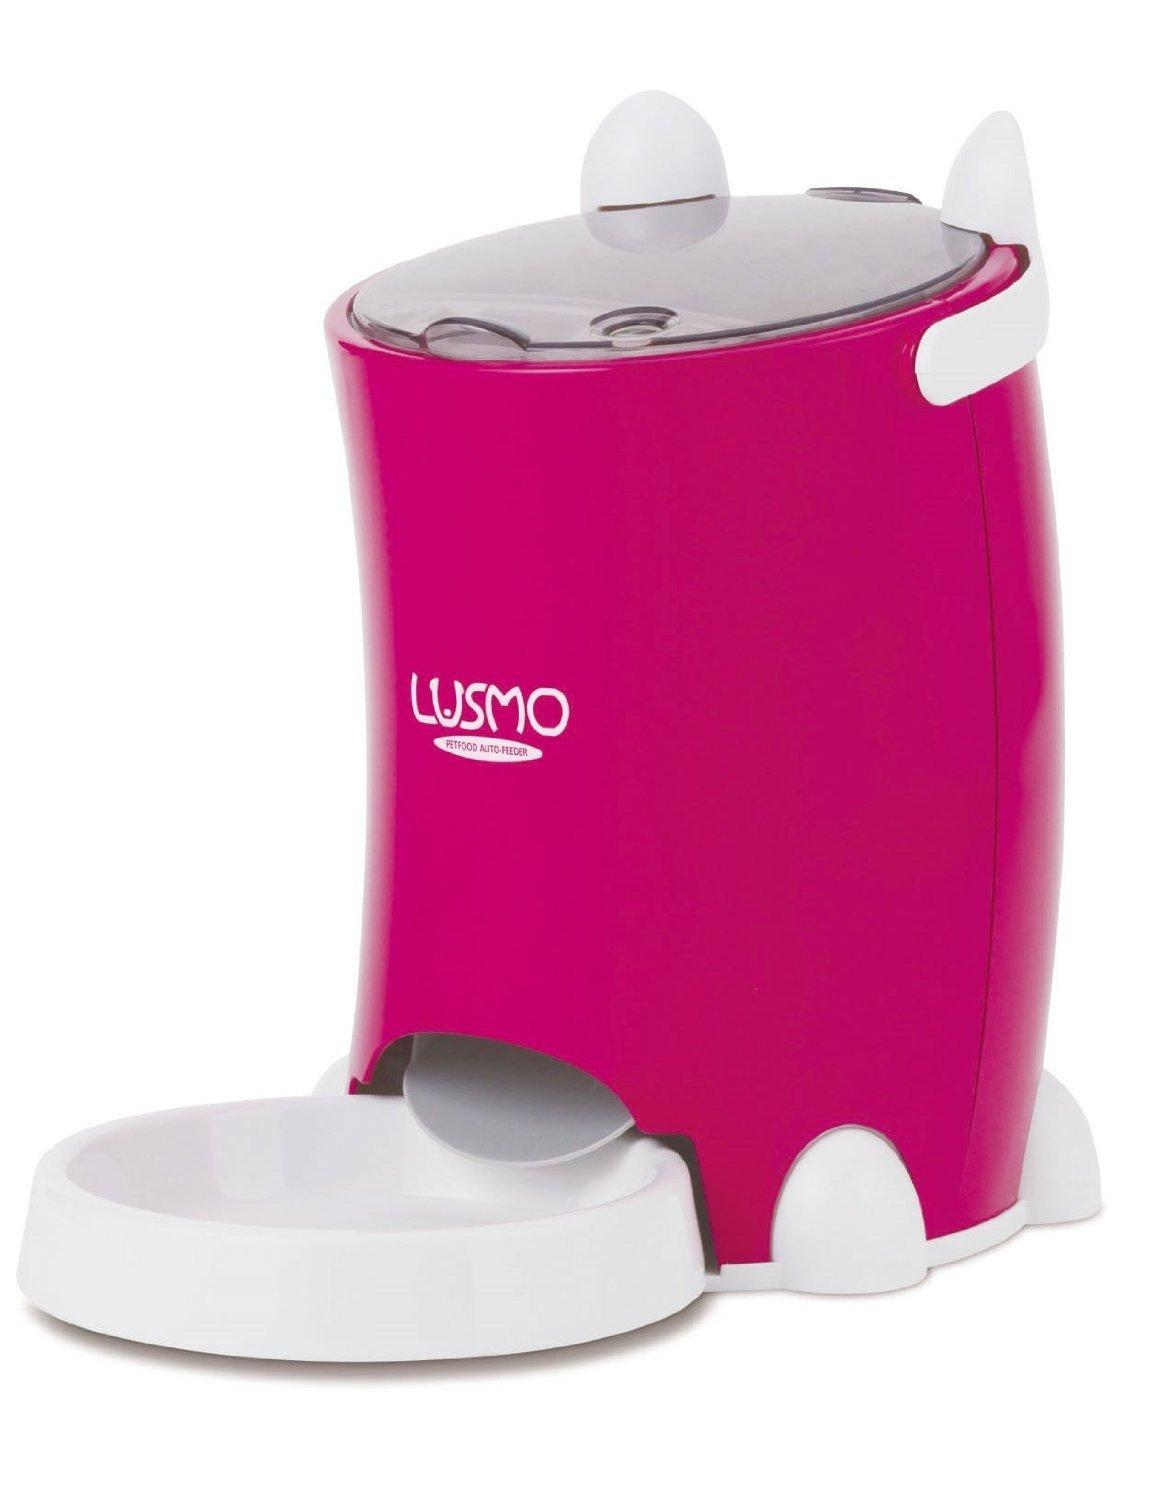 Lusmo Automatic Pet Feeder Must Read Review